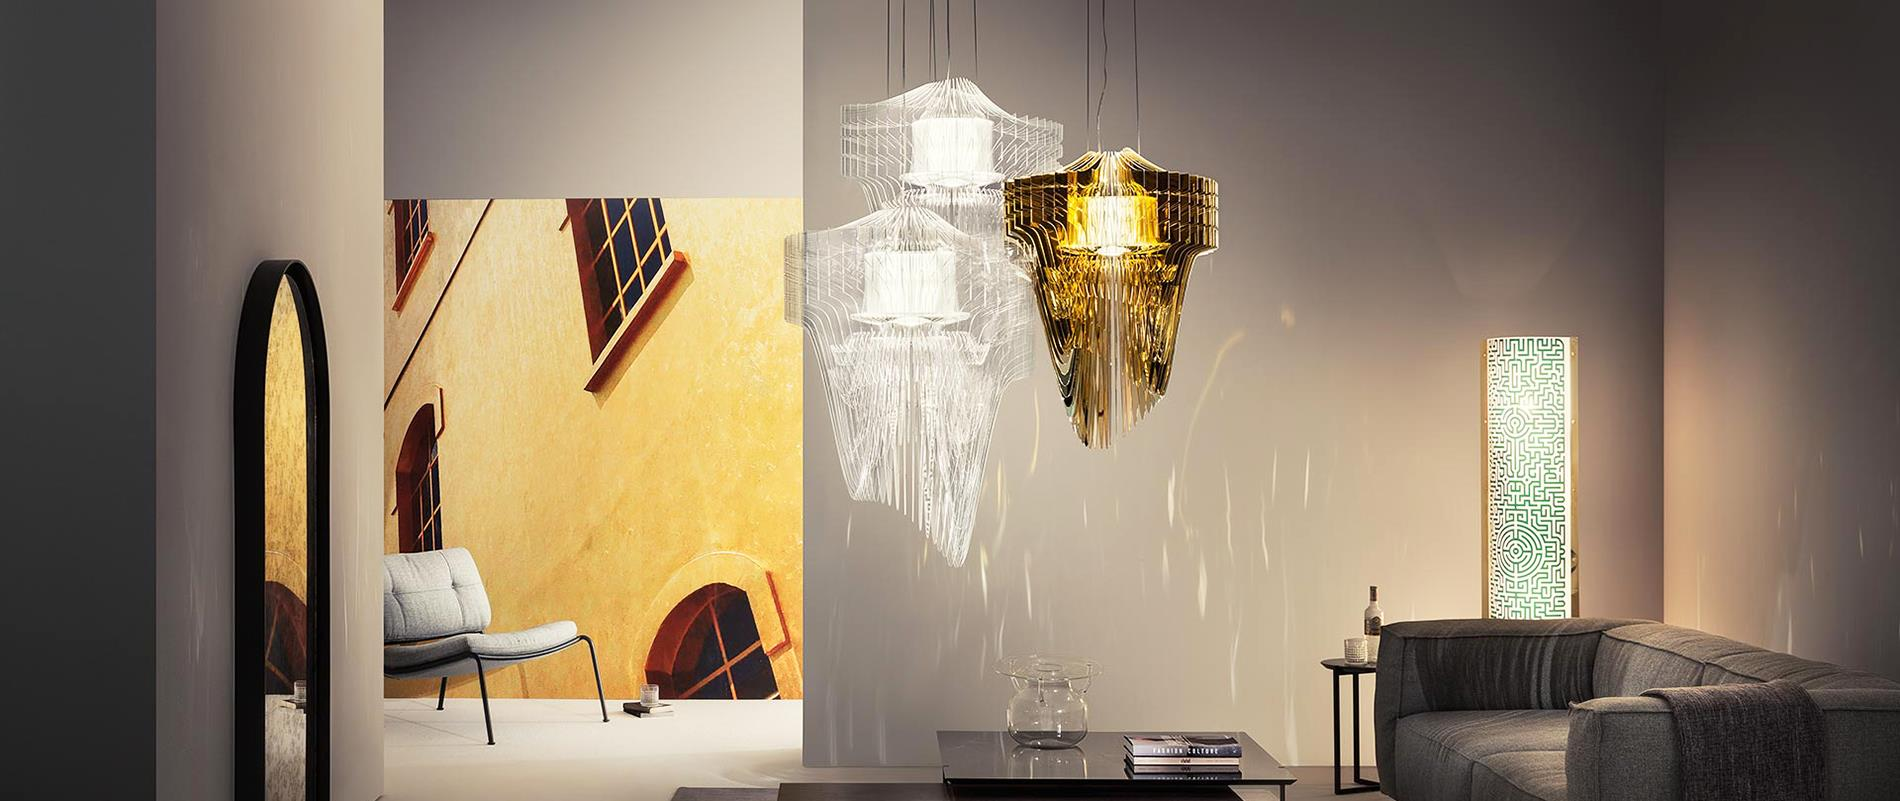 slamp-aria-gold-000.jpg